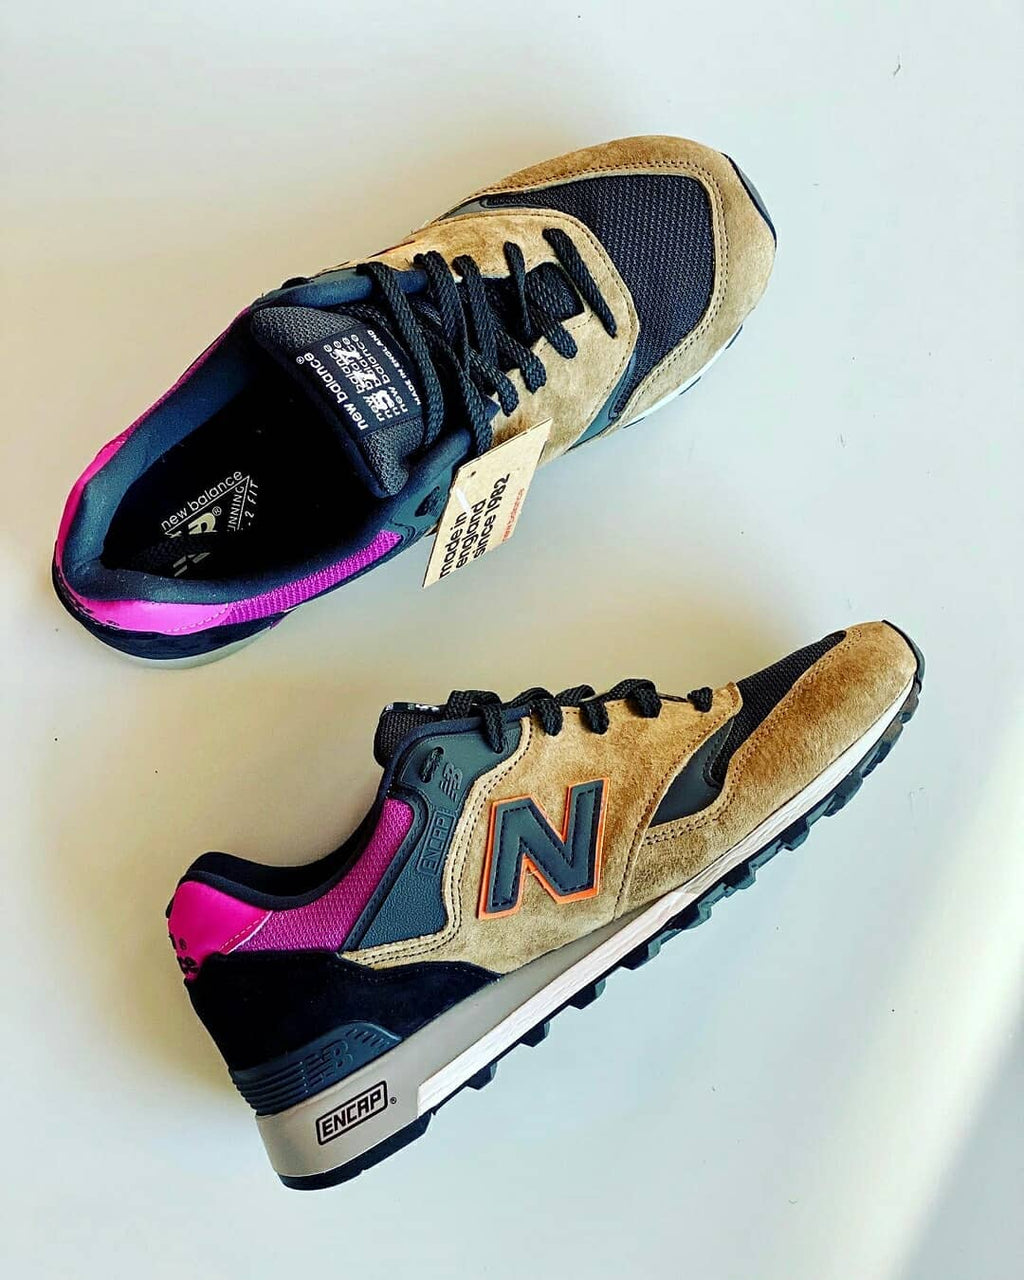 New Balance M577KPO Made in UK Sneakers